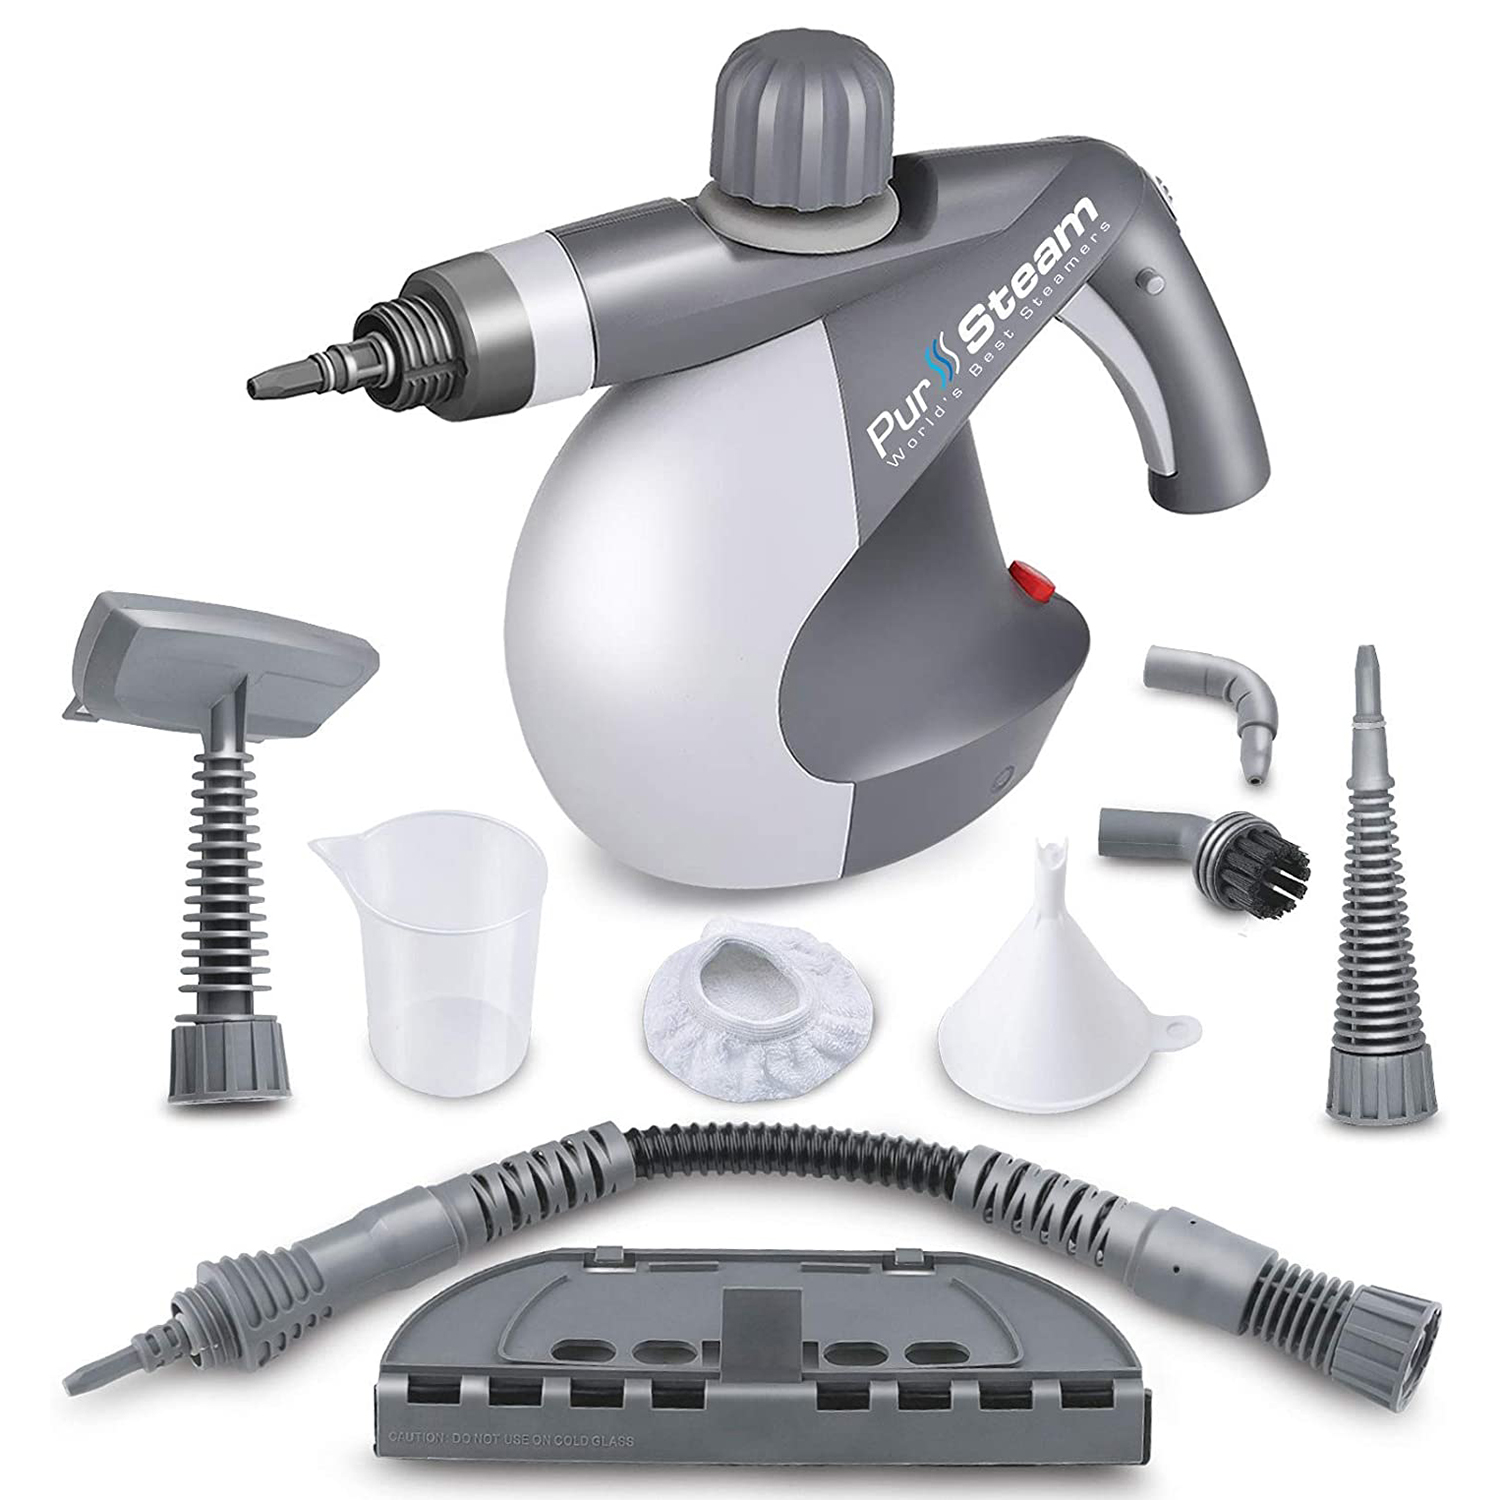 PurSteam World's Best Steamers Chemical-Free Cleaning PurSteam Handheld